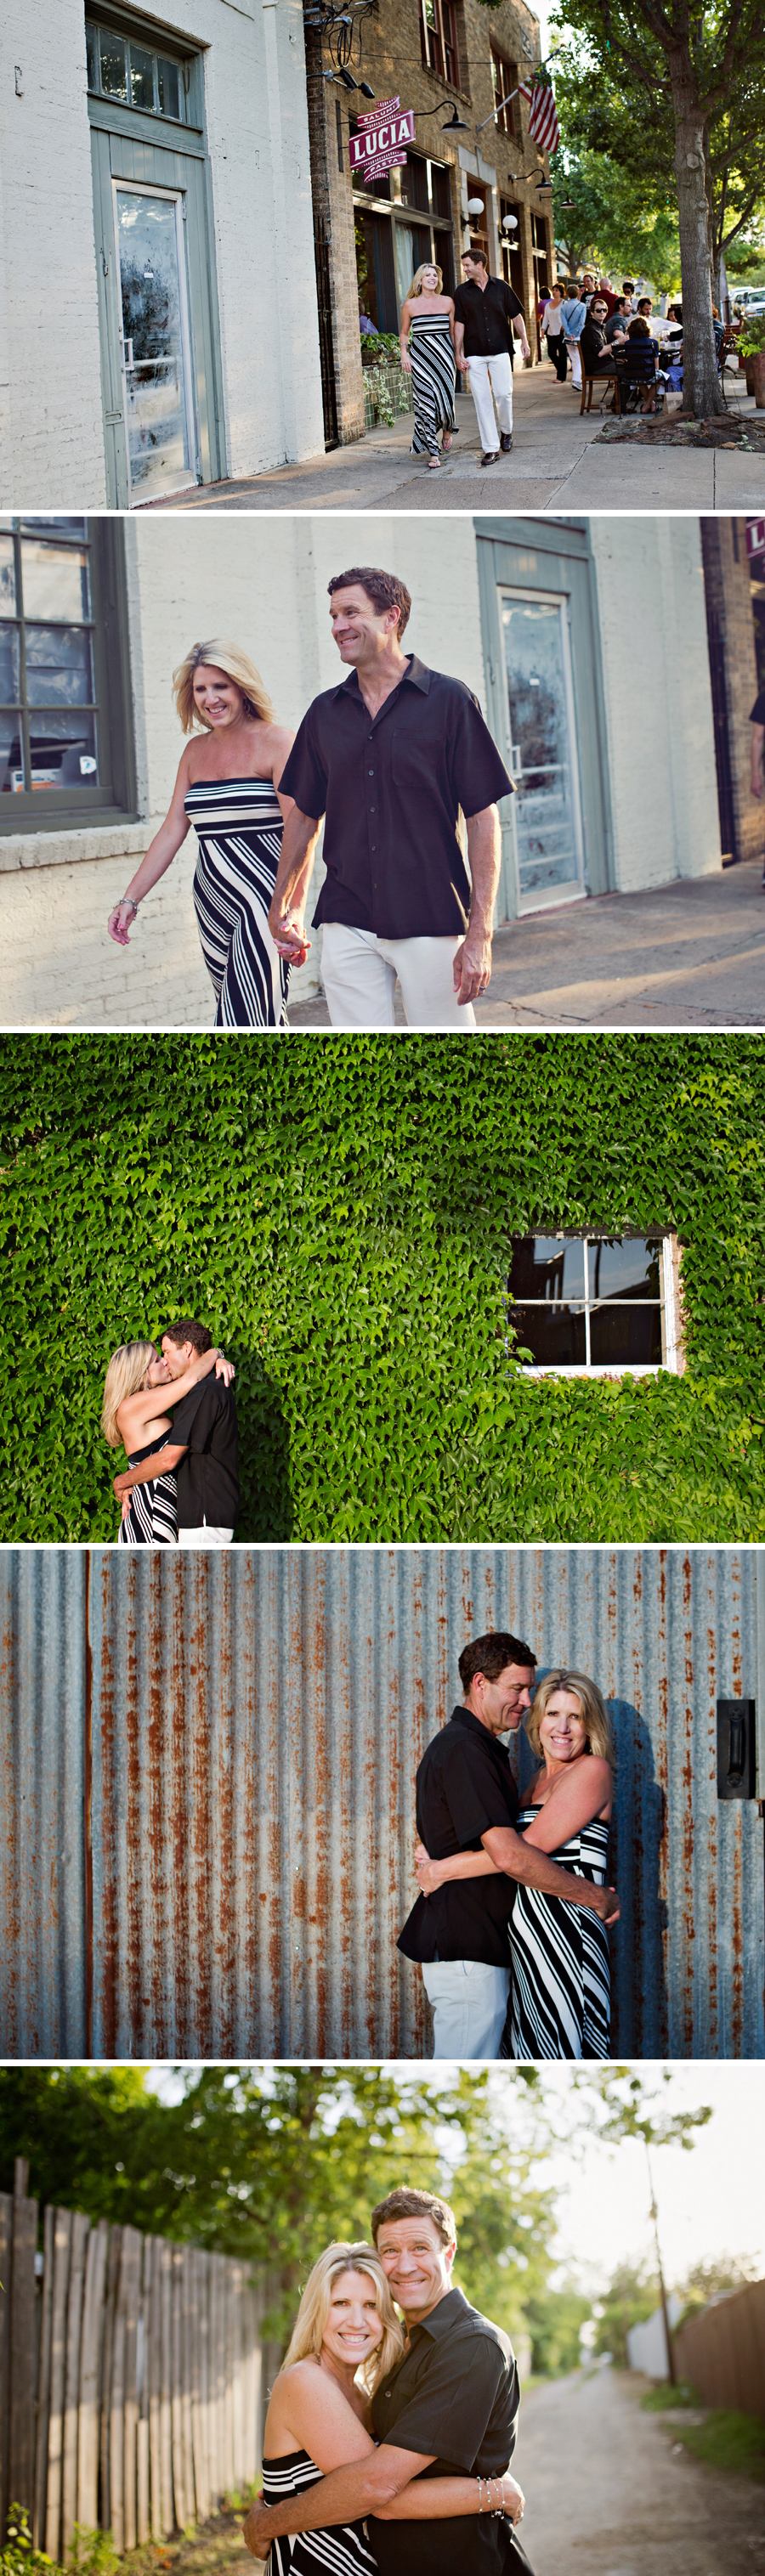 Dallas-Couple's-Photographerc003